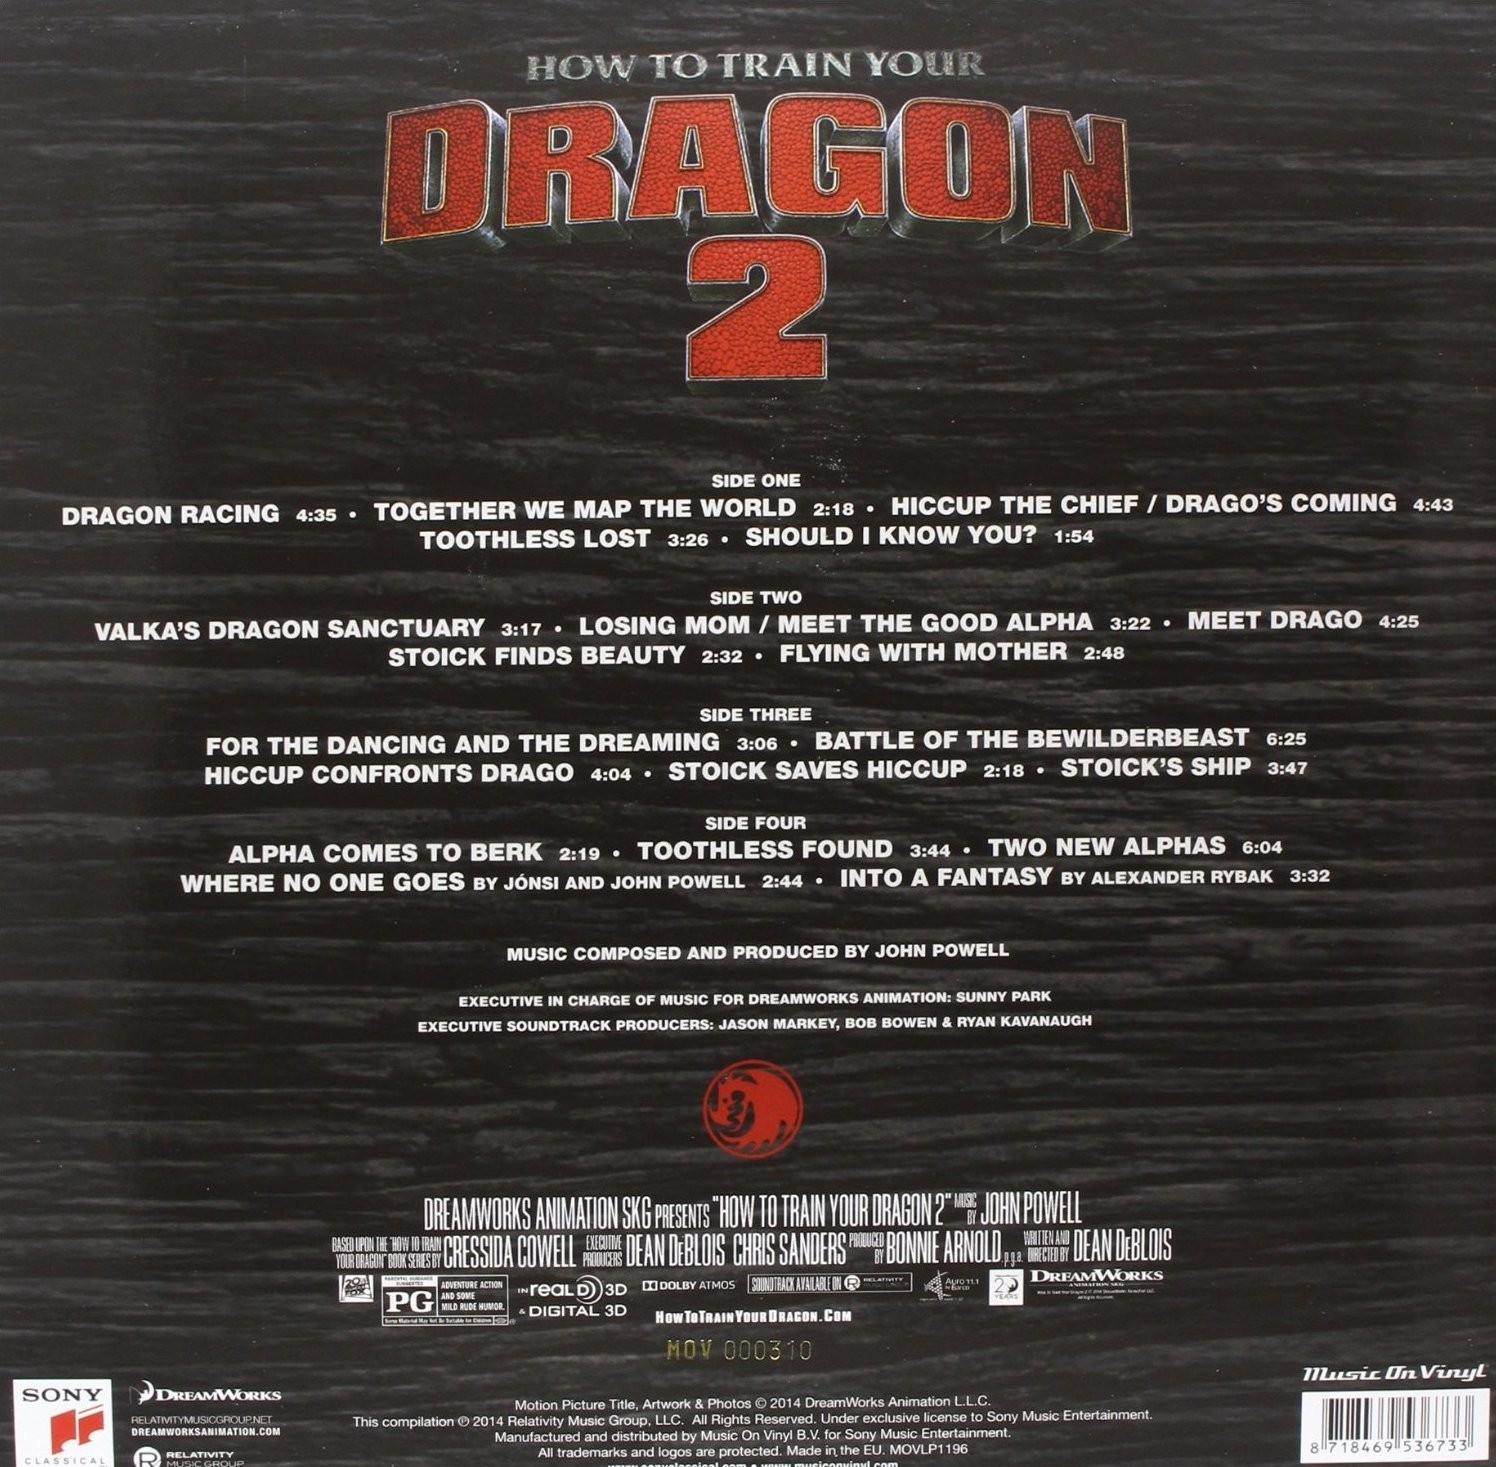 Film music site how to train your dragon 2 soundtrack john powell how to train your dragon 2 soundtrack john powell cd back cover download ccuart Gallery